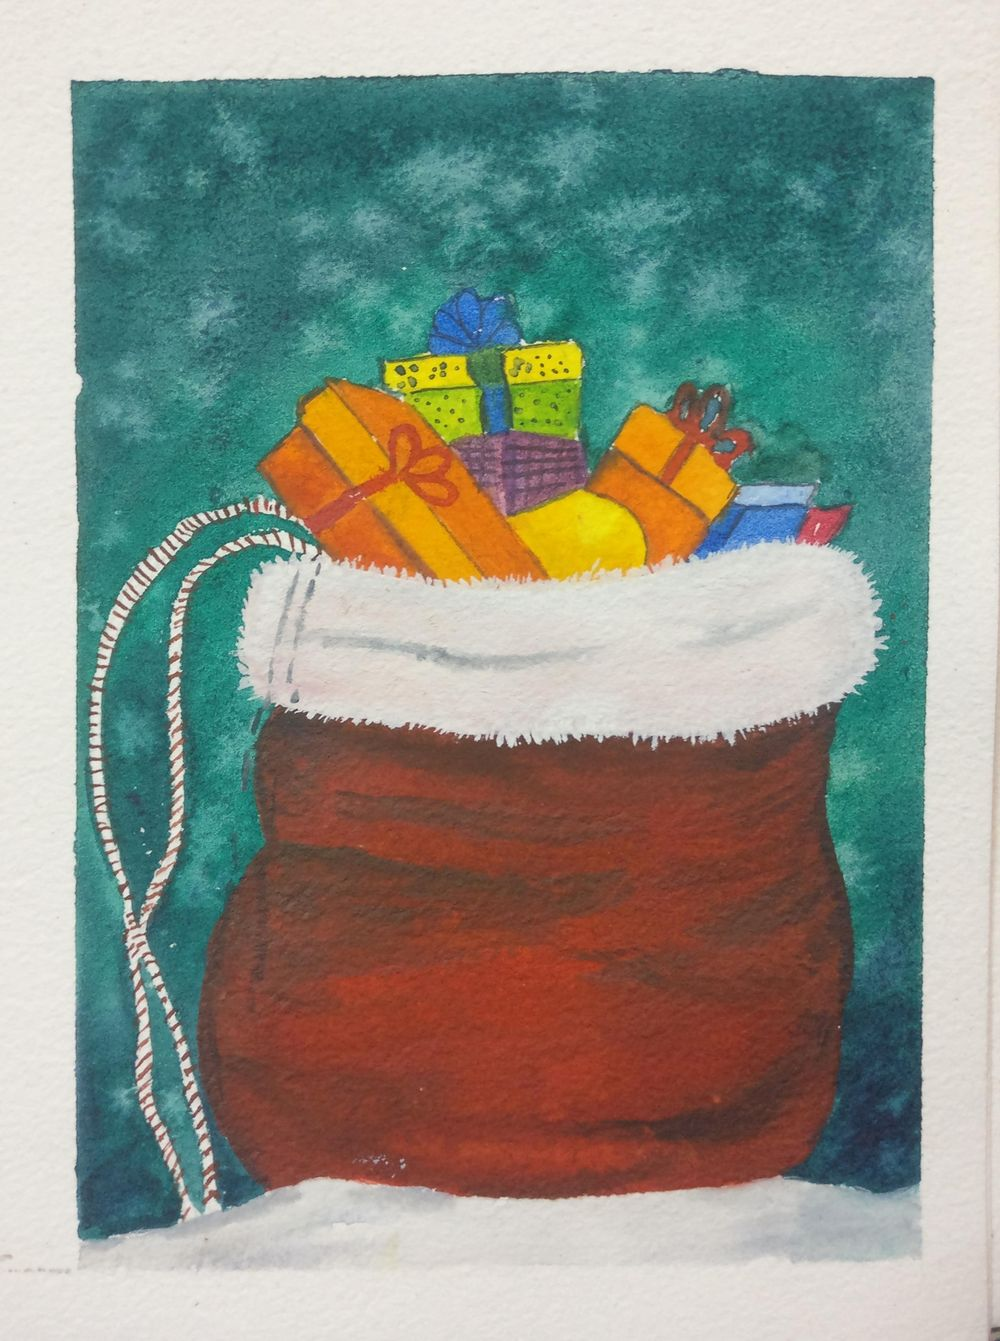 Christmas with watercolors - image 18 - student project